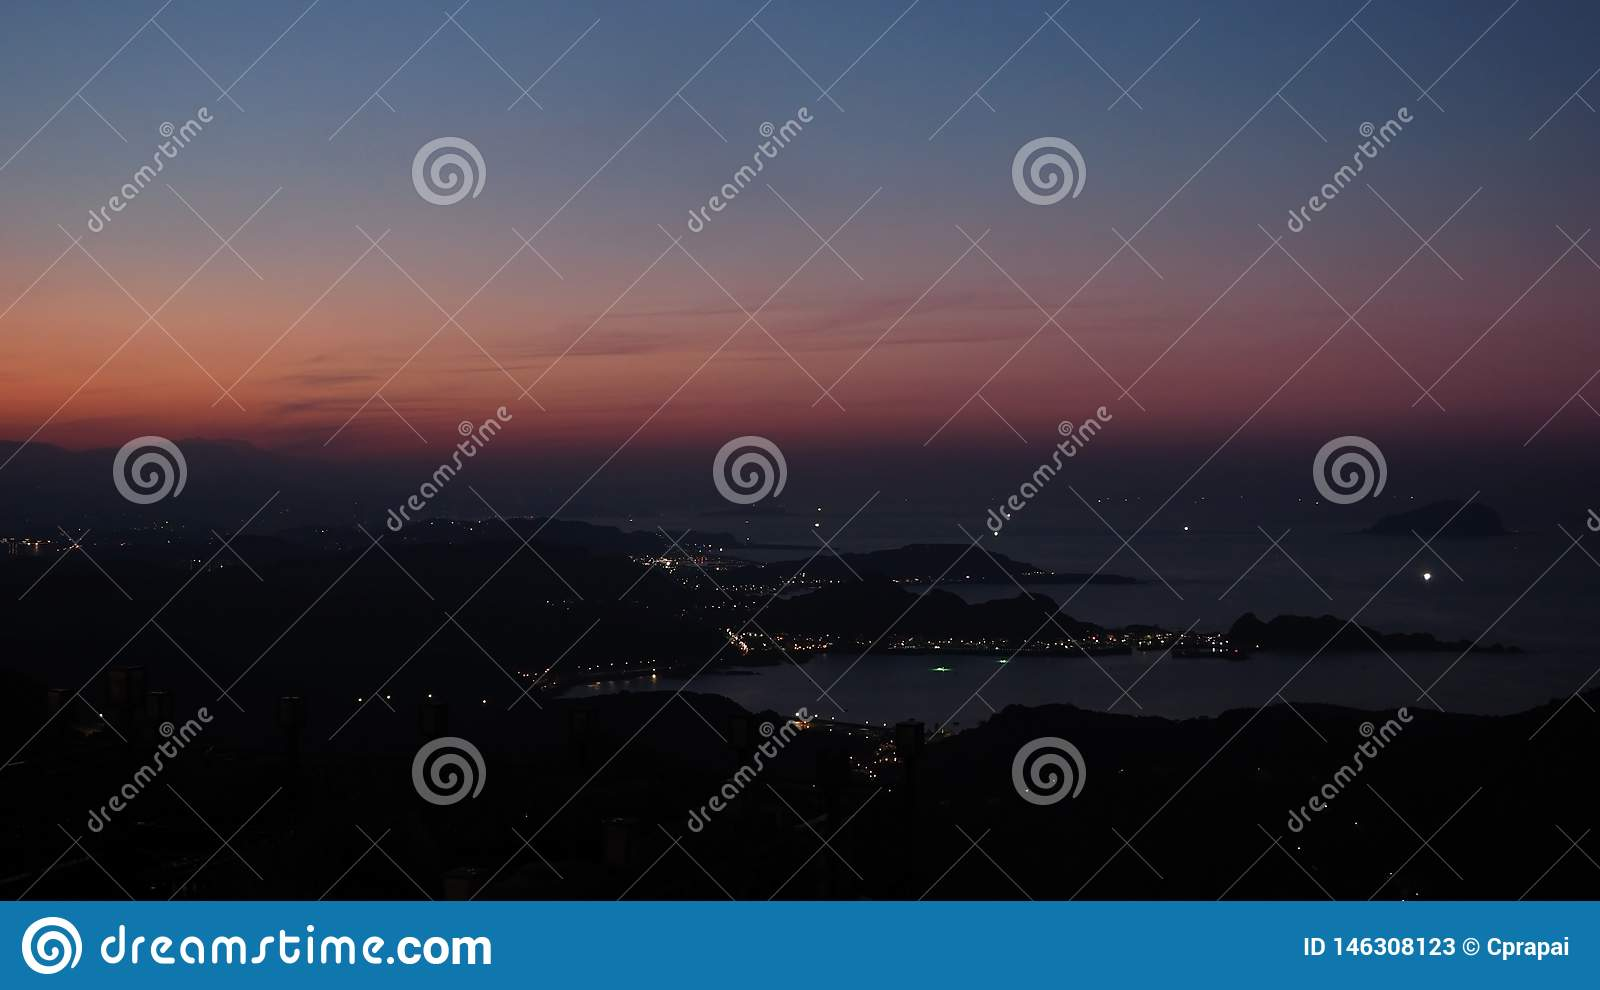 Silhouette of cityscape and mountain range with evening orange purple sunset sky. Also some city lights from houses in the costal